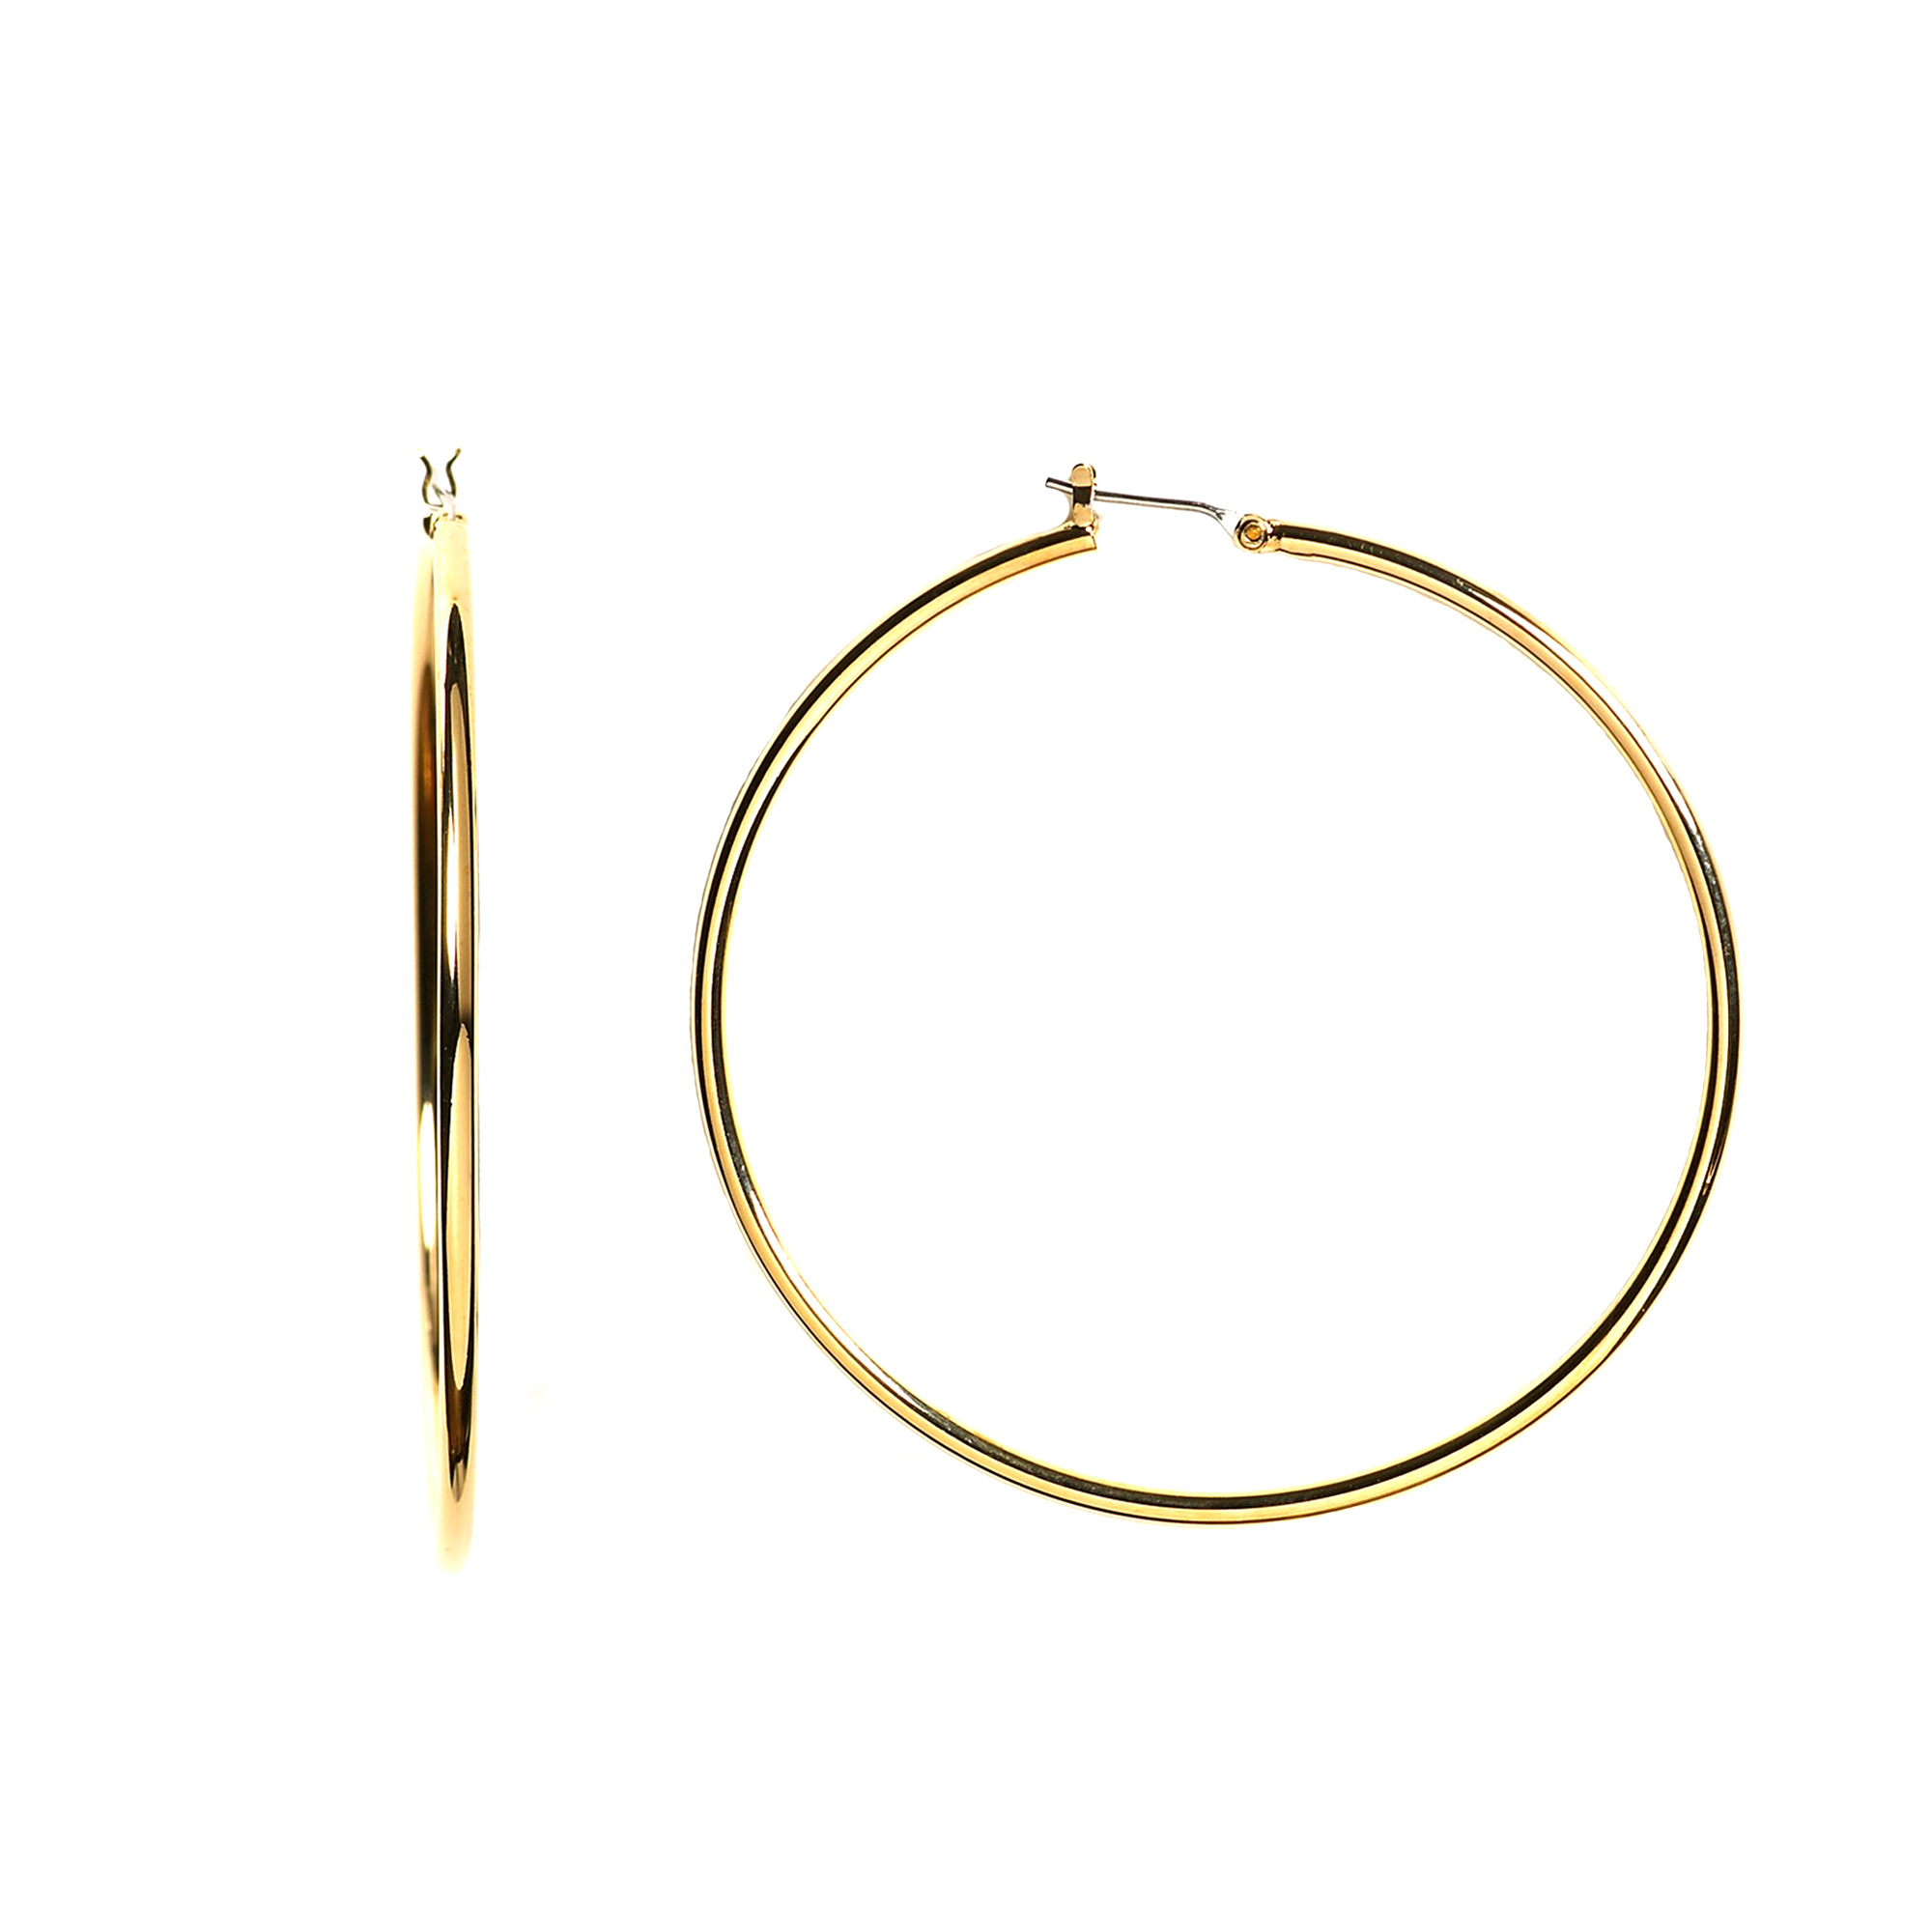 10k Yellow Gold 1.5mm Shiny Round Tube Hoop Earrings, Diameter 25mm Complete your jewelry collection with a gorgeous pair of 10k gold hoop earrings. Whether you prefer large bohemian look or tiny orbs, you'll discover plenty of sizes to match your style. These earrings have a secure snap post clasp making them easy to wear and remove.